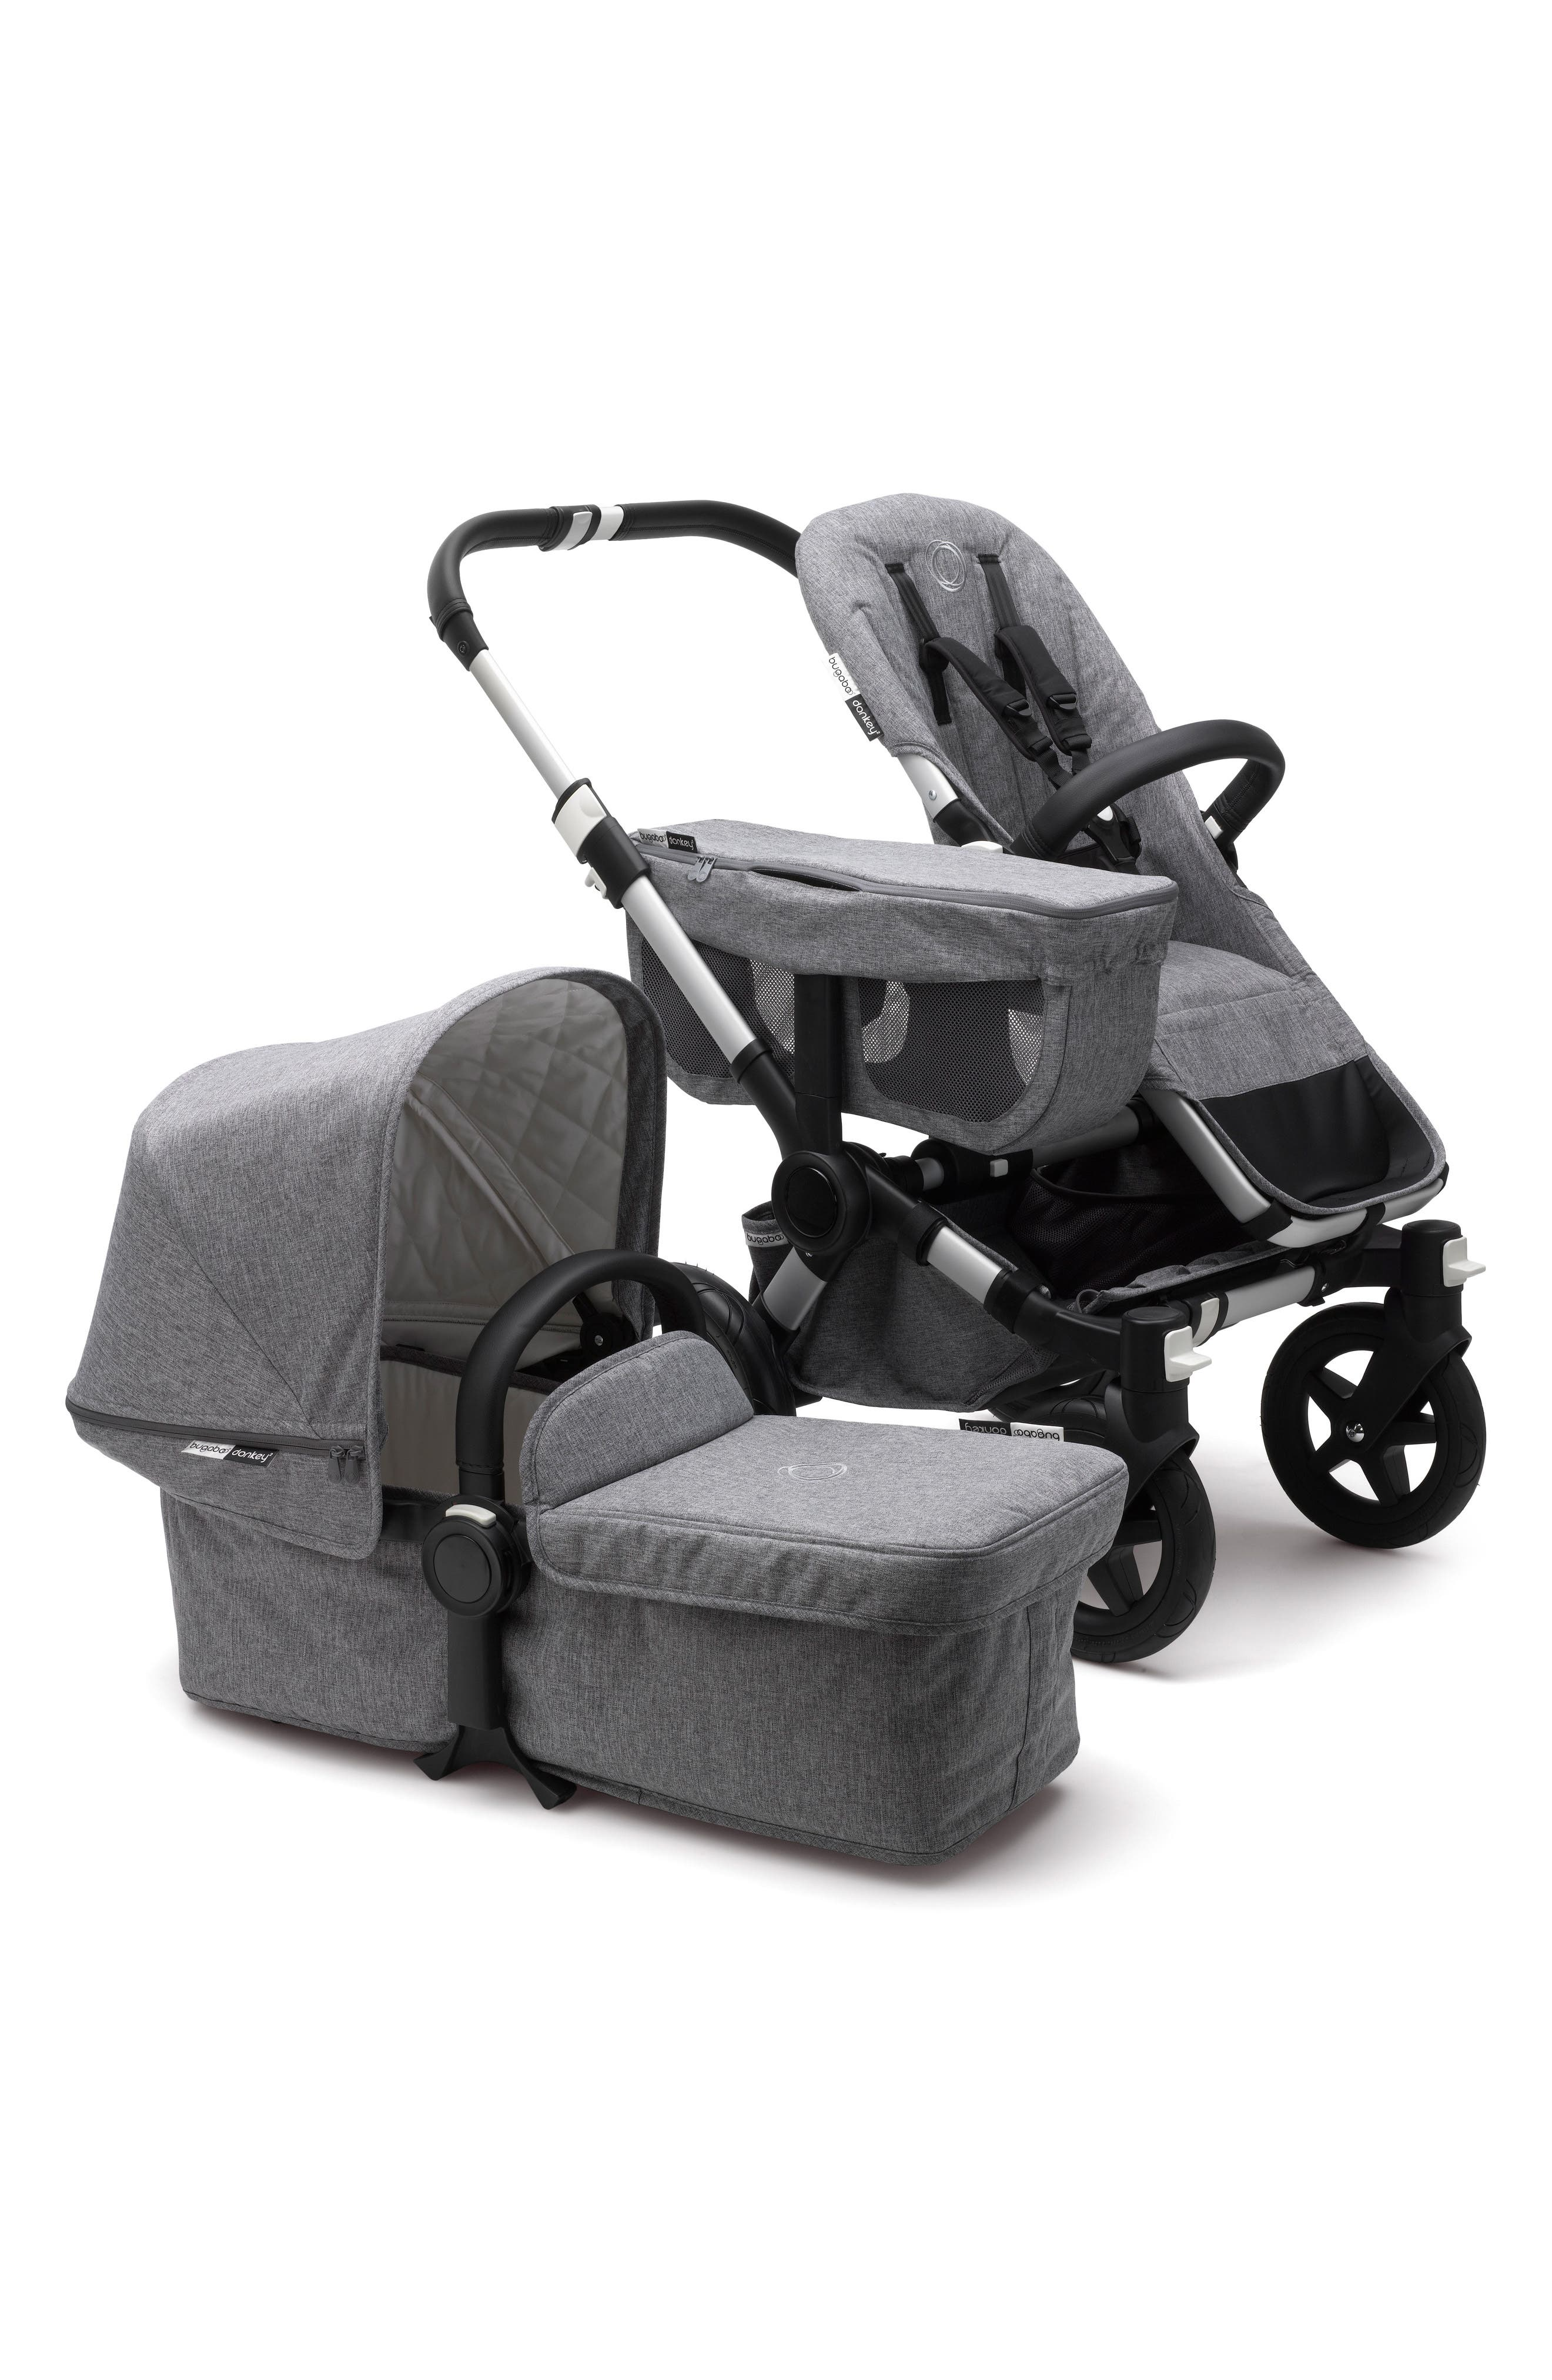 Donkey2 Classic Mono Complete Stroller with Bassinet,                             Main thumbnail 1, color,                             GREY MELANGE/ ALUMINUM